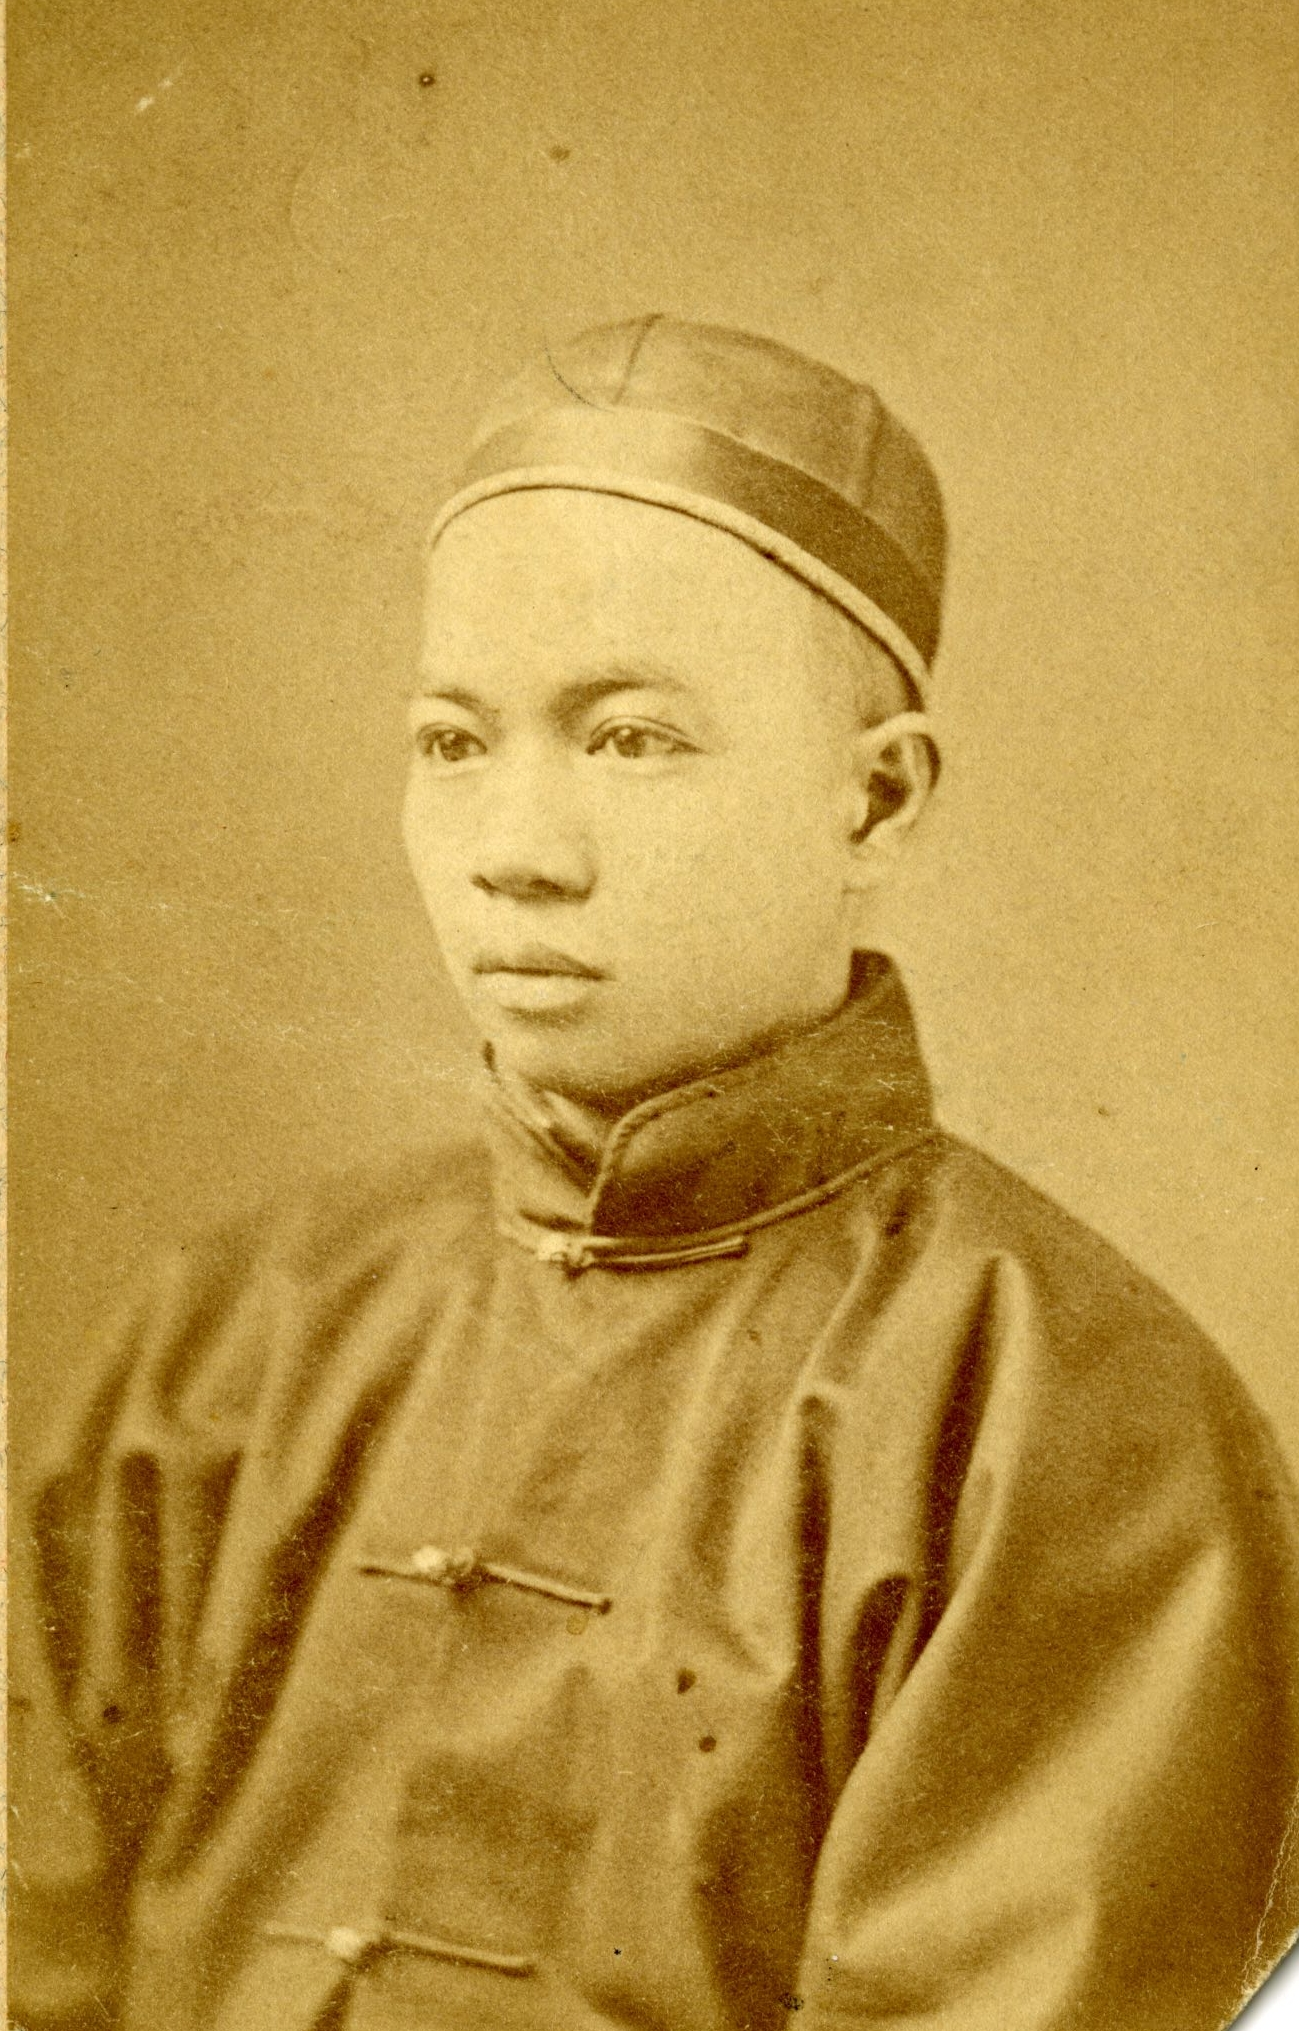 Tyng Se Chung, ca. 1876.   2-2-20. Thomas E. LaFargue Papers, 1873-1946, courtesy Manuscripts, Archives, and Special Collections (MASC), Washington State University Libraries.